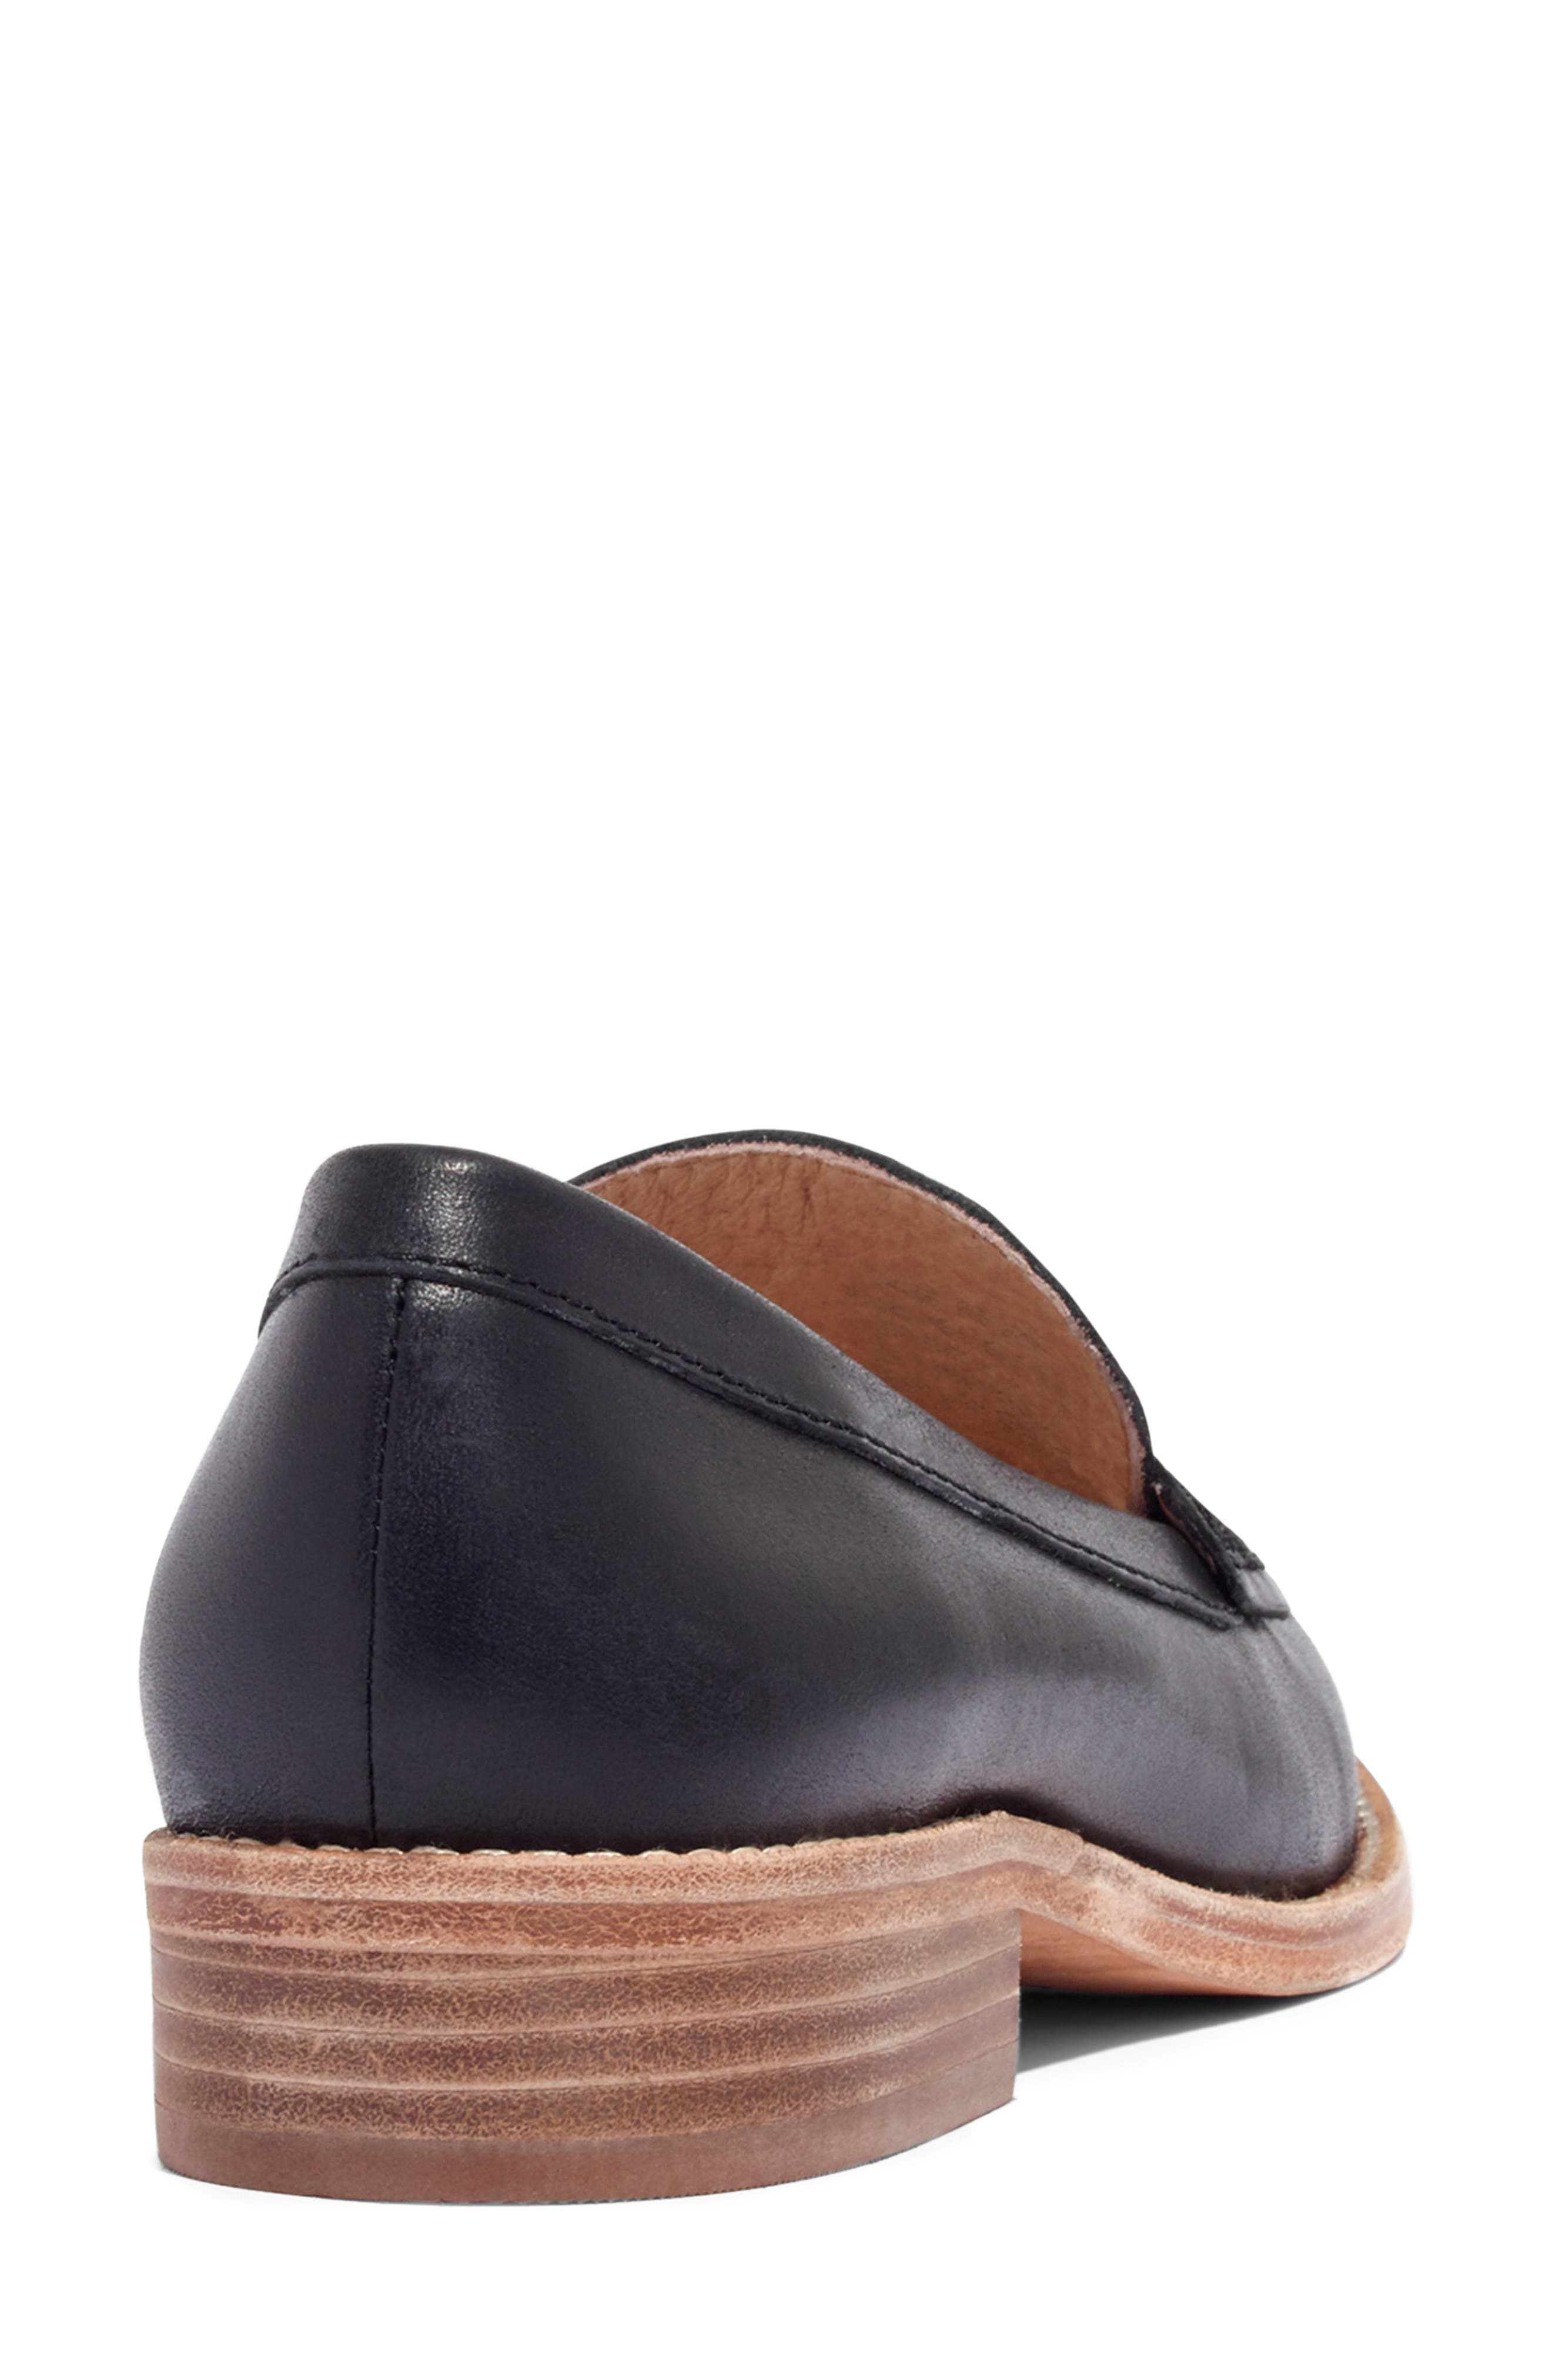 MADEWELL, The Elinor Loafer, Alternate thumbnail 2, color, BLACK LEATHER